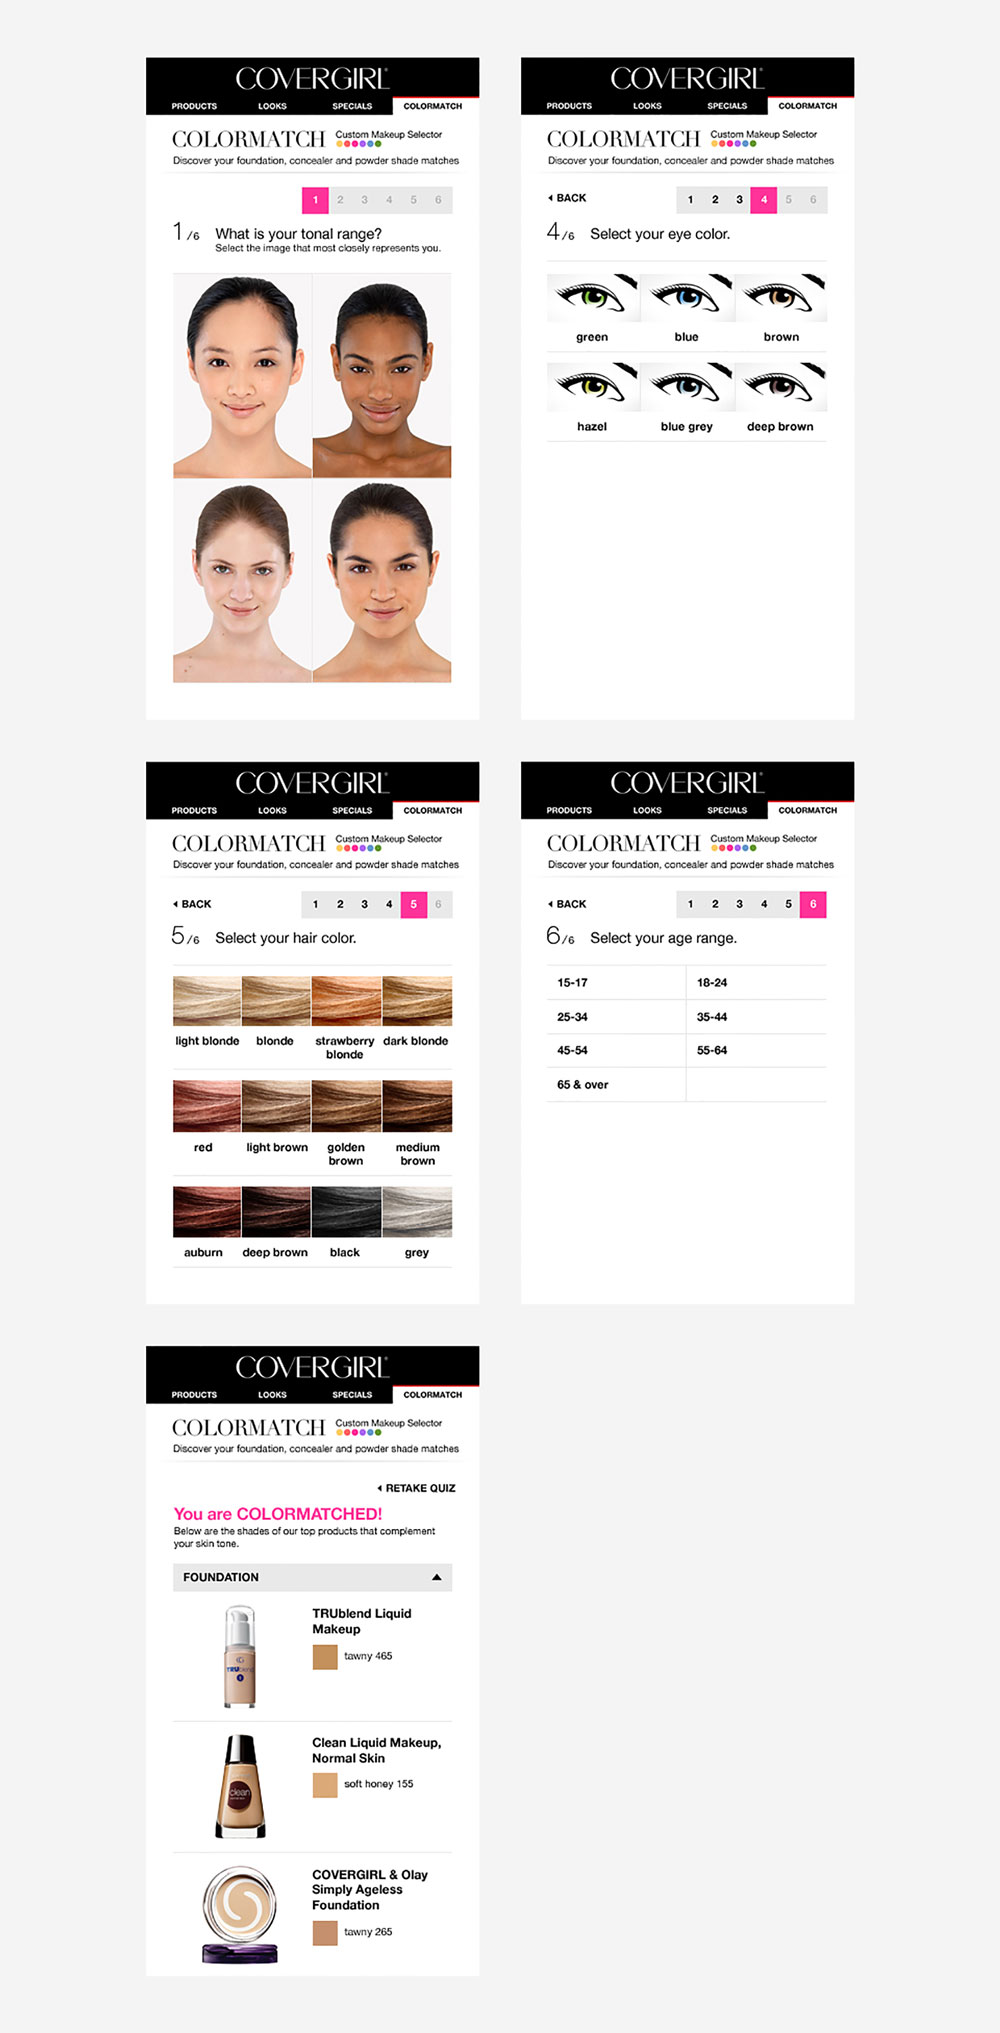 Covergirl: Colormatch on mobile